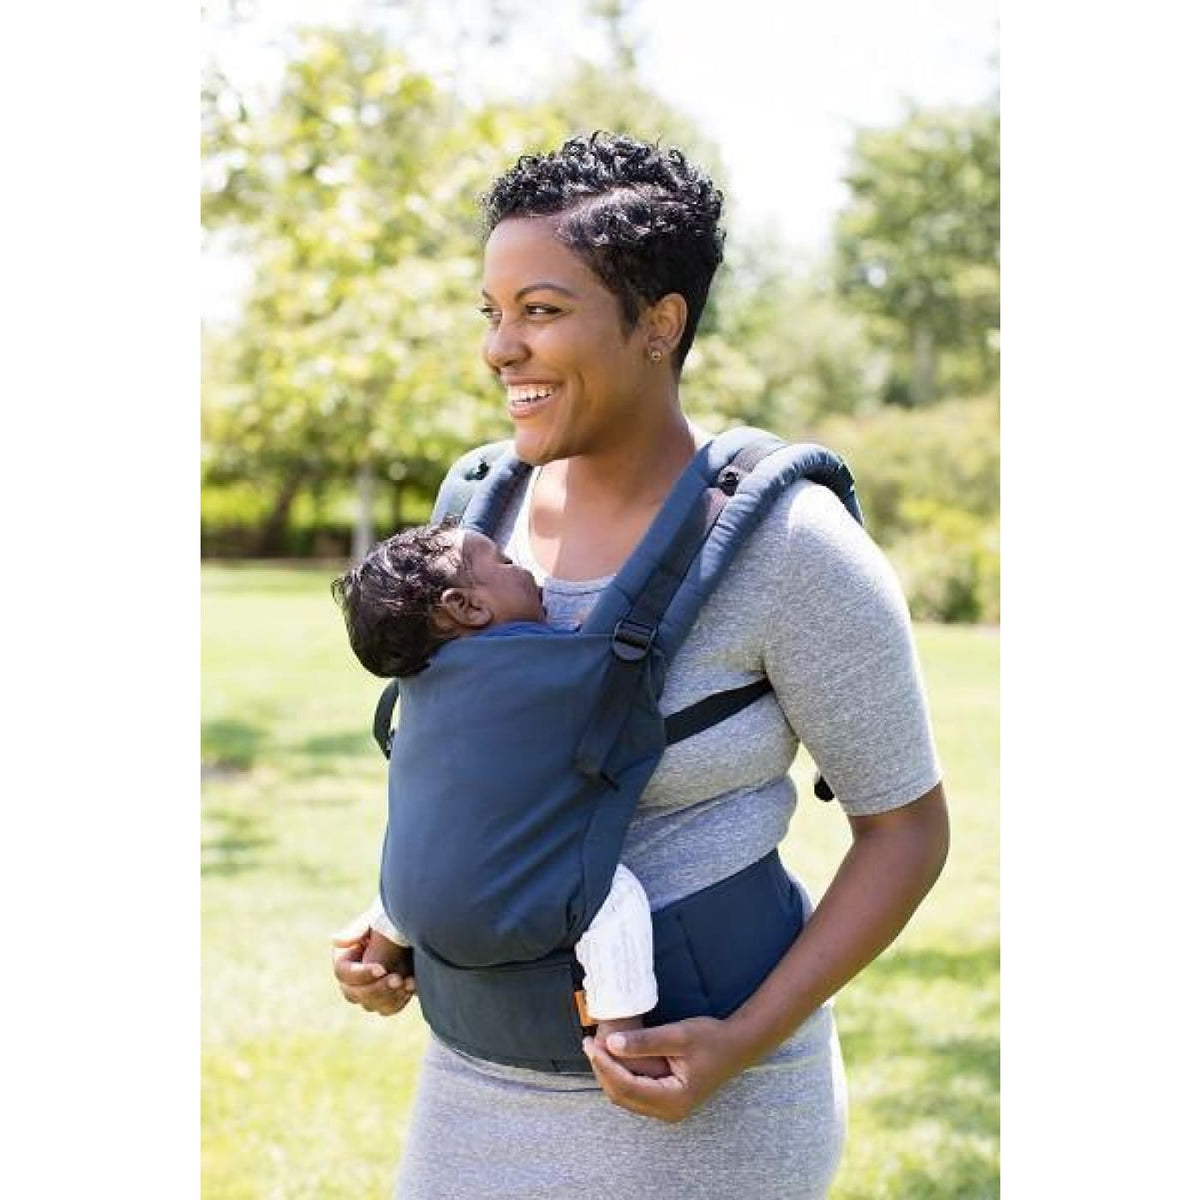 Baby Tula Free to Grow Carrier - Indigo - ON THE GO - BABY CARRIERS/SLINGS